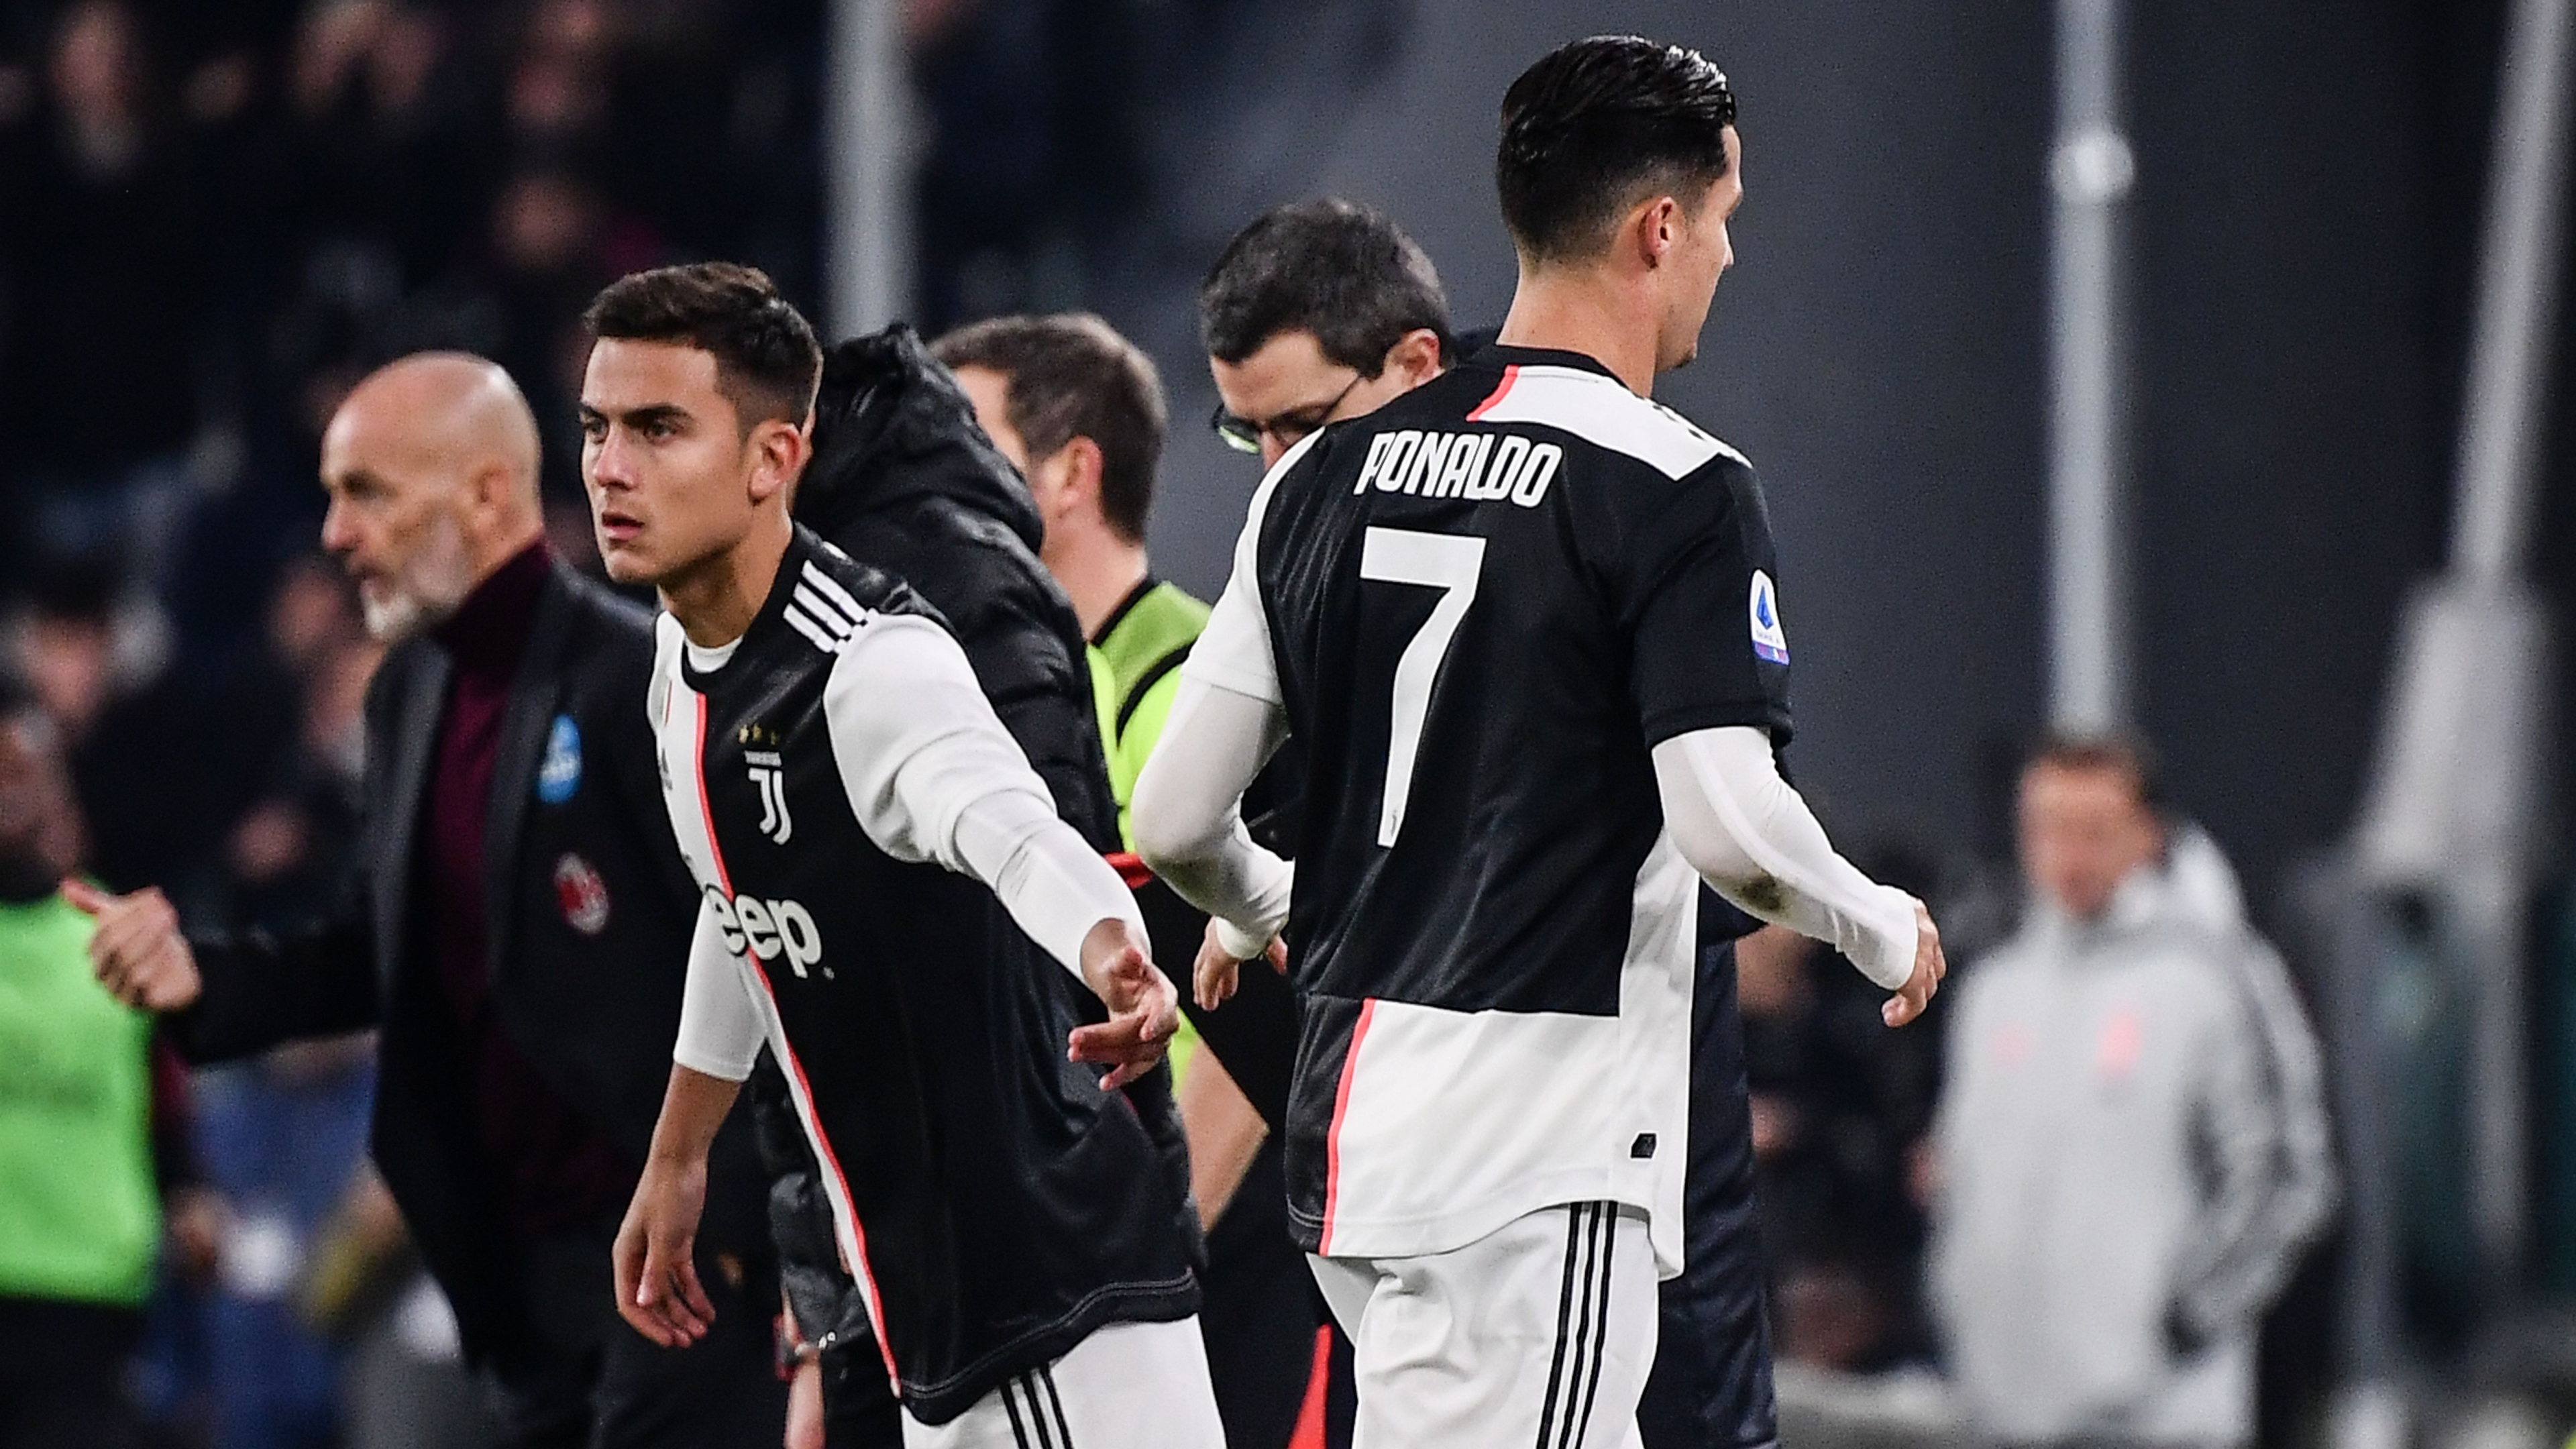 Ronaldo storms down Juventus tunnel after being substituted for second time in a week